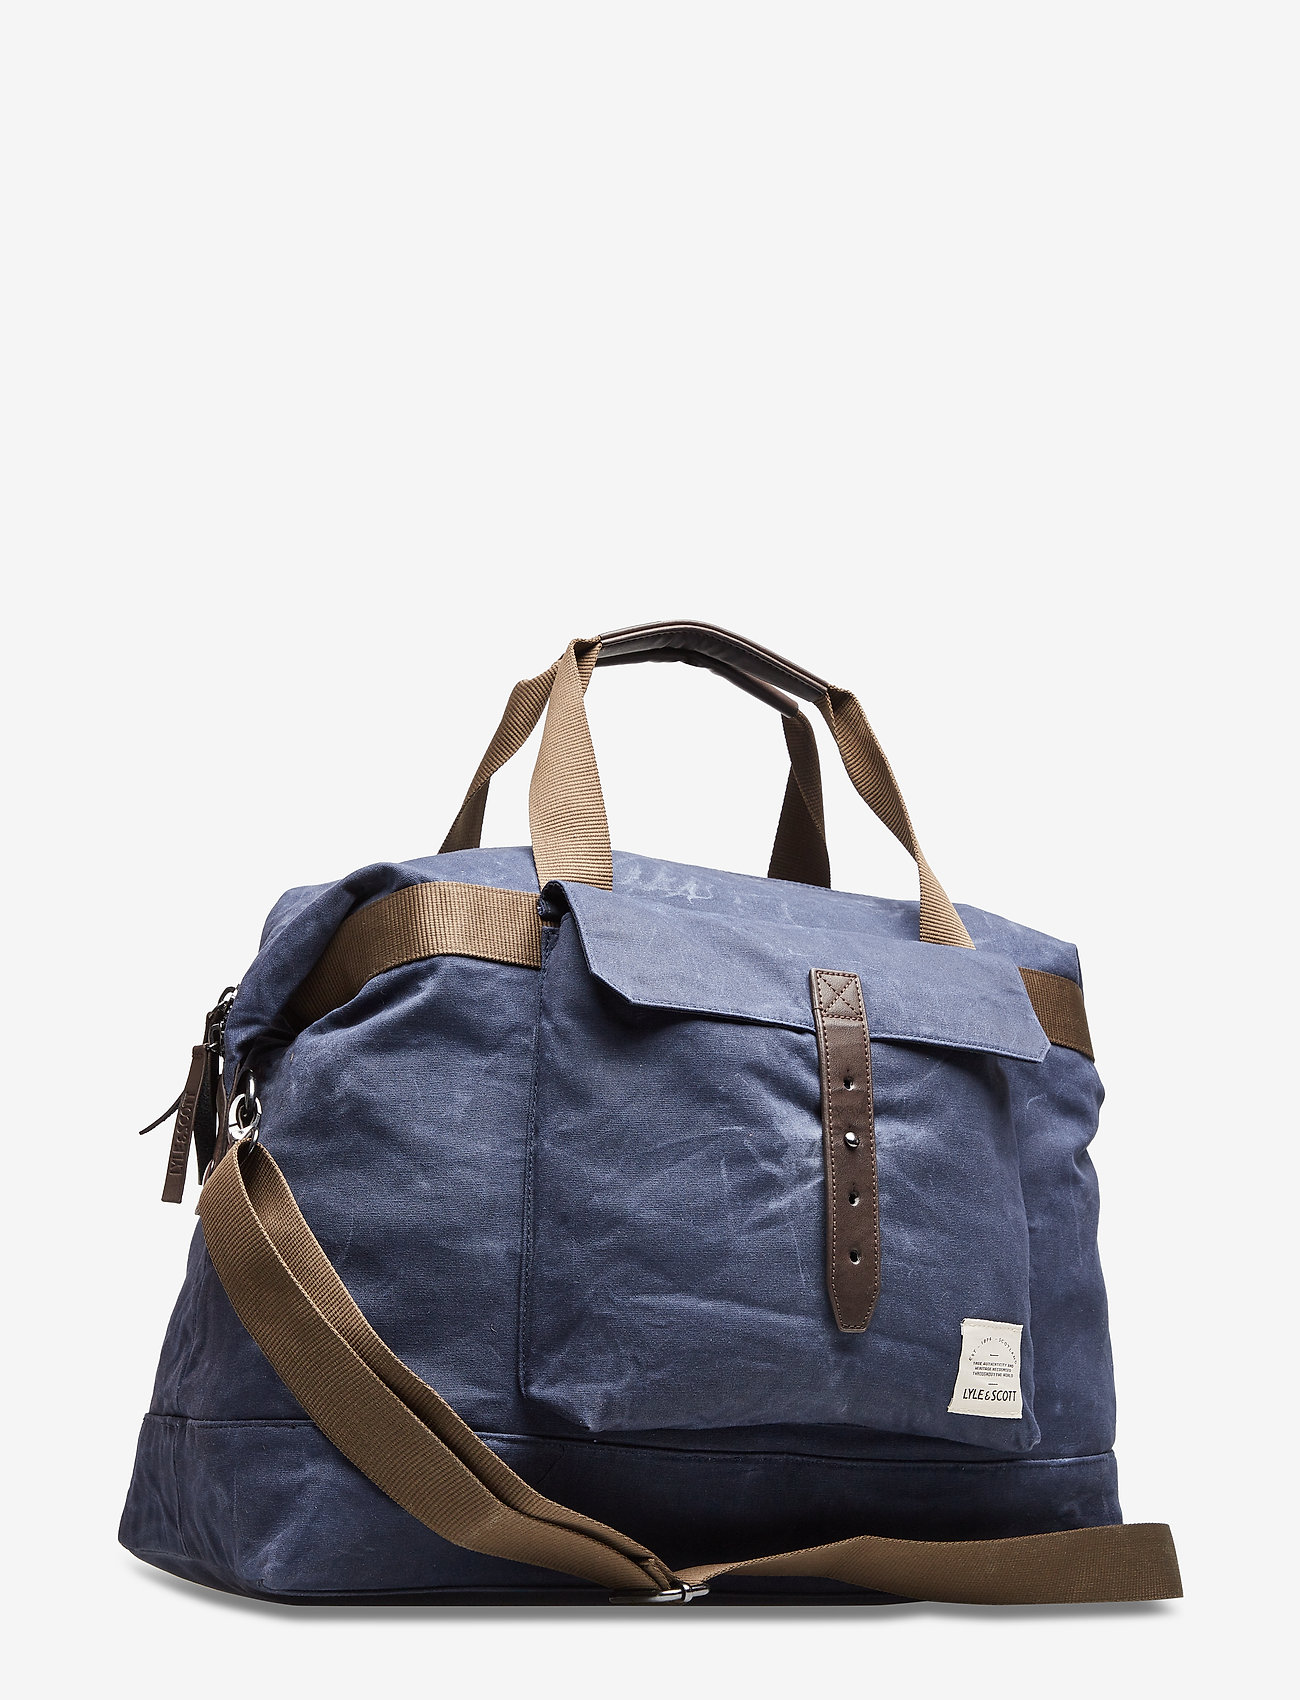 Lyle & Scott Weekender Bag - Torby weekendowe DARK NAVY - Torby